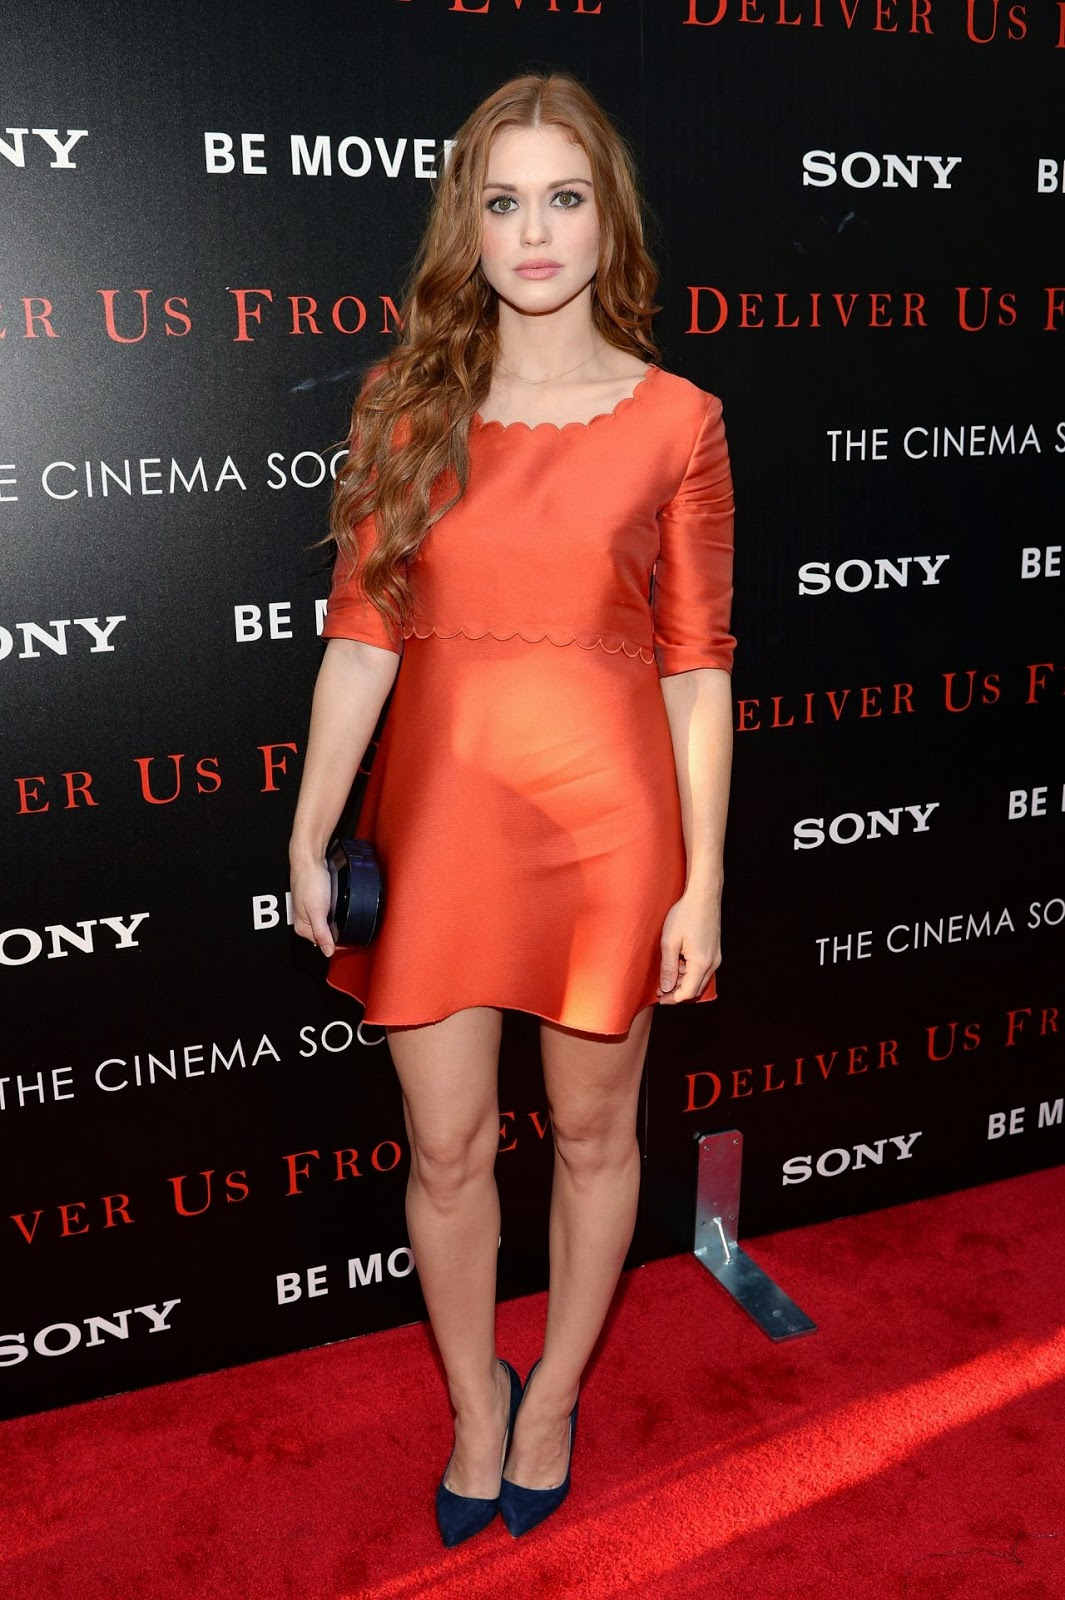 Holland Roden at the 'Deliver us from Evil' screening in NYC